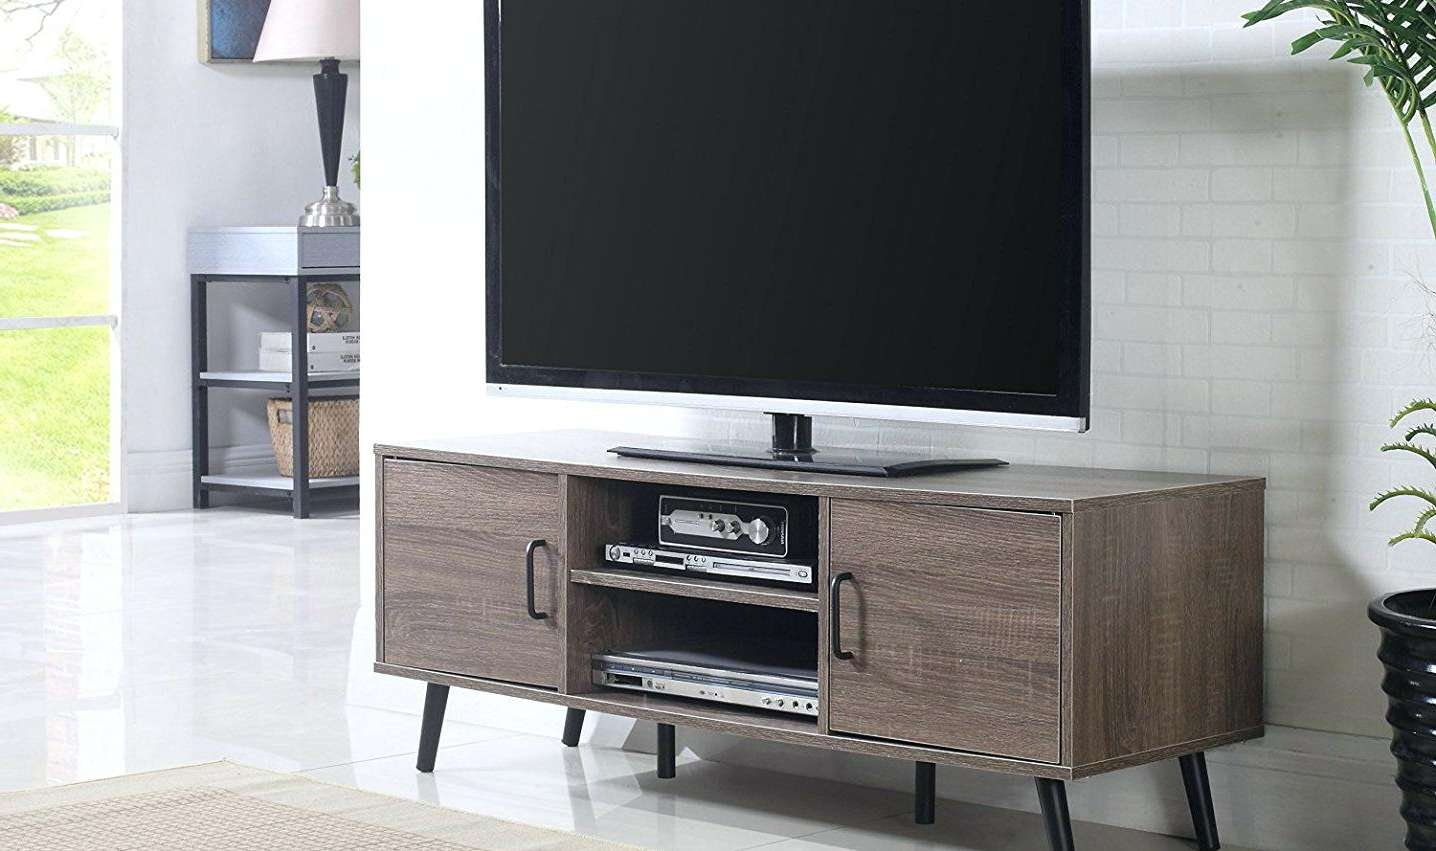 Tv Stand : All Modern Tv Stand People On Home Decoration 2 White With All Modern Tv Stands (View 20 of 20)